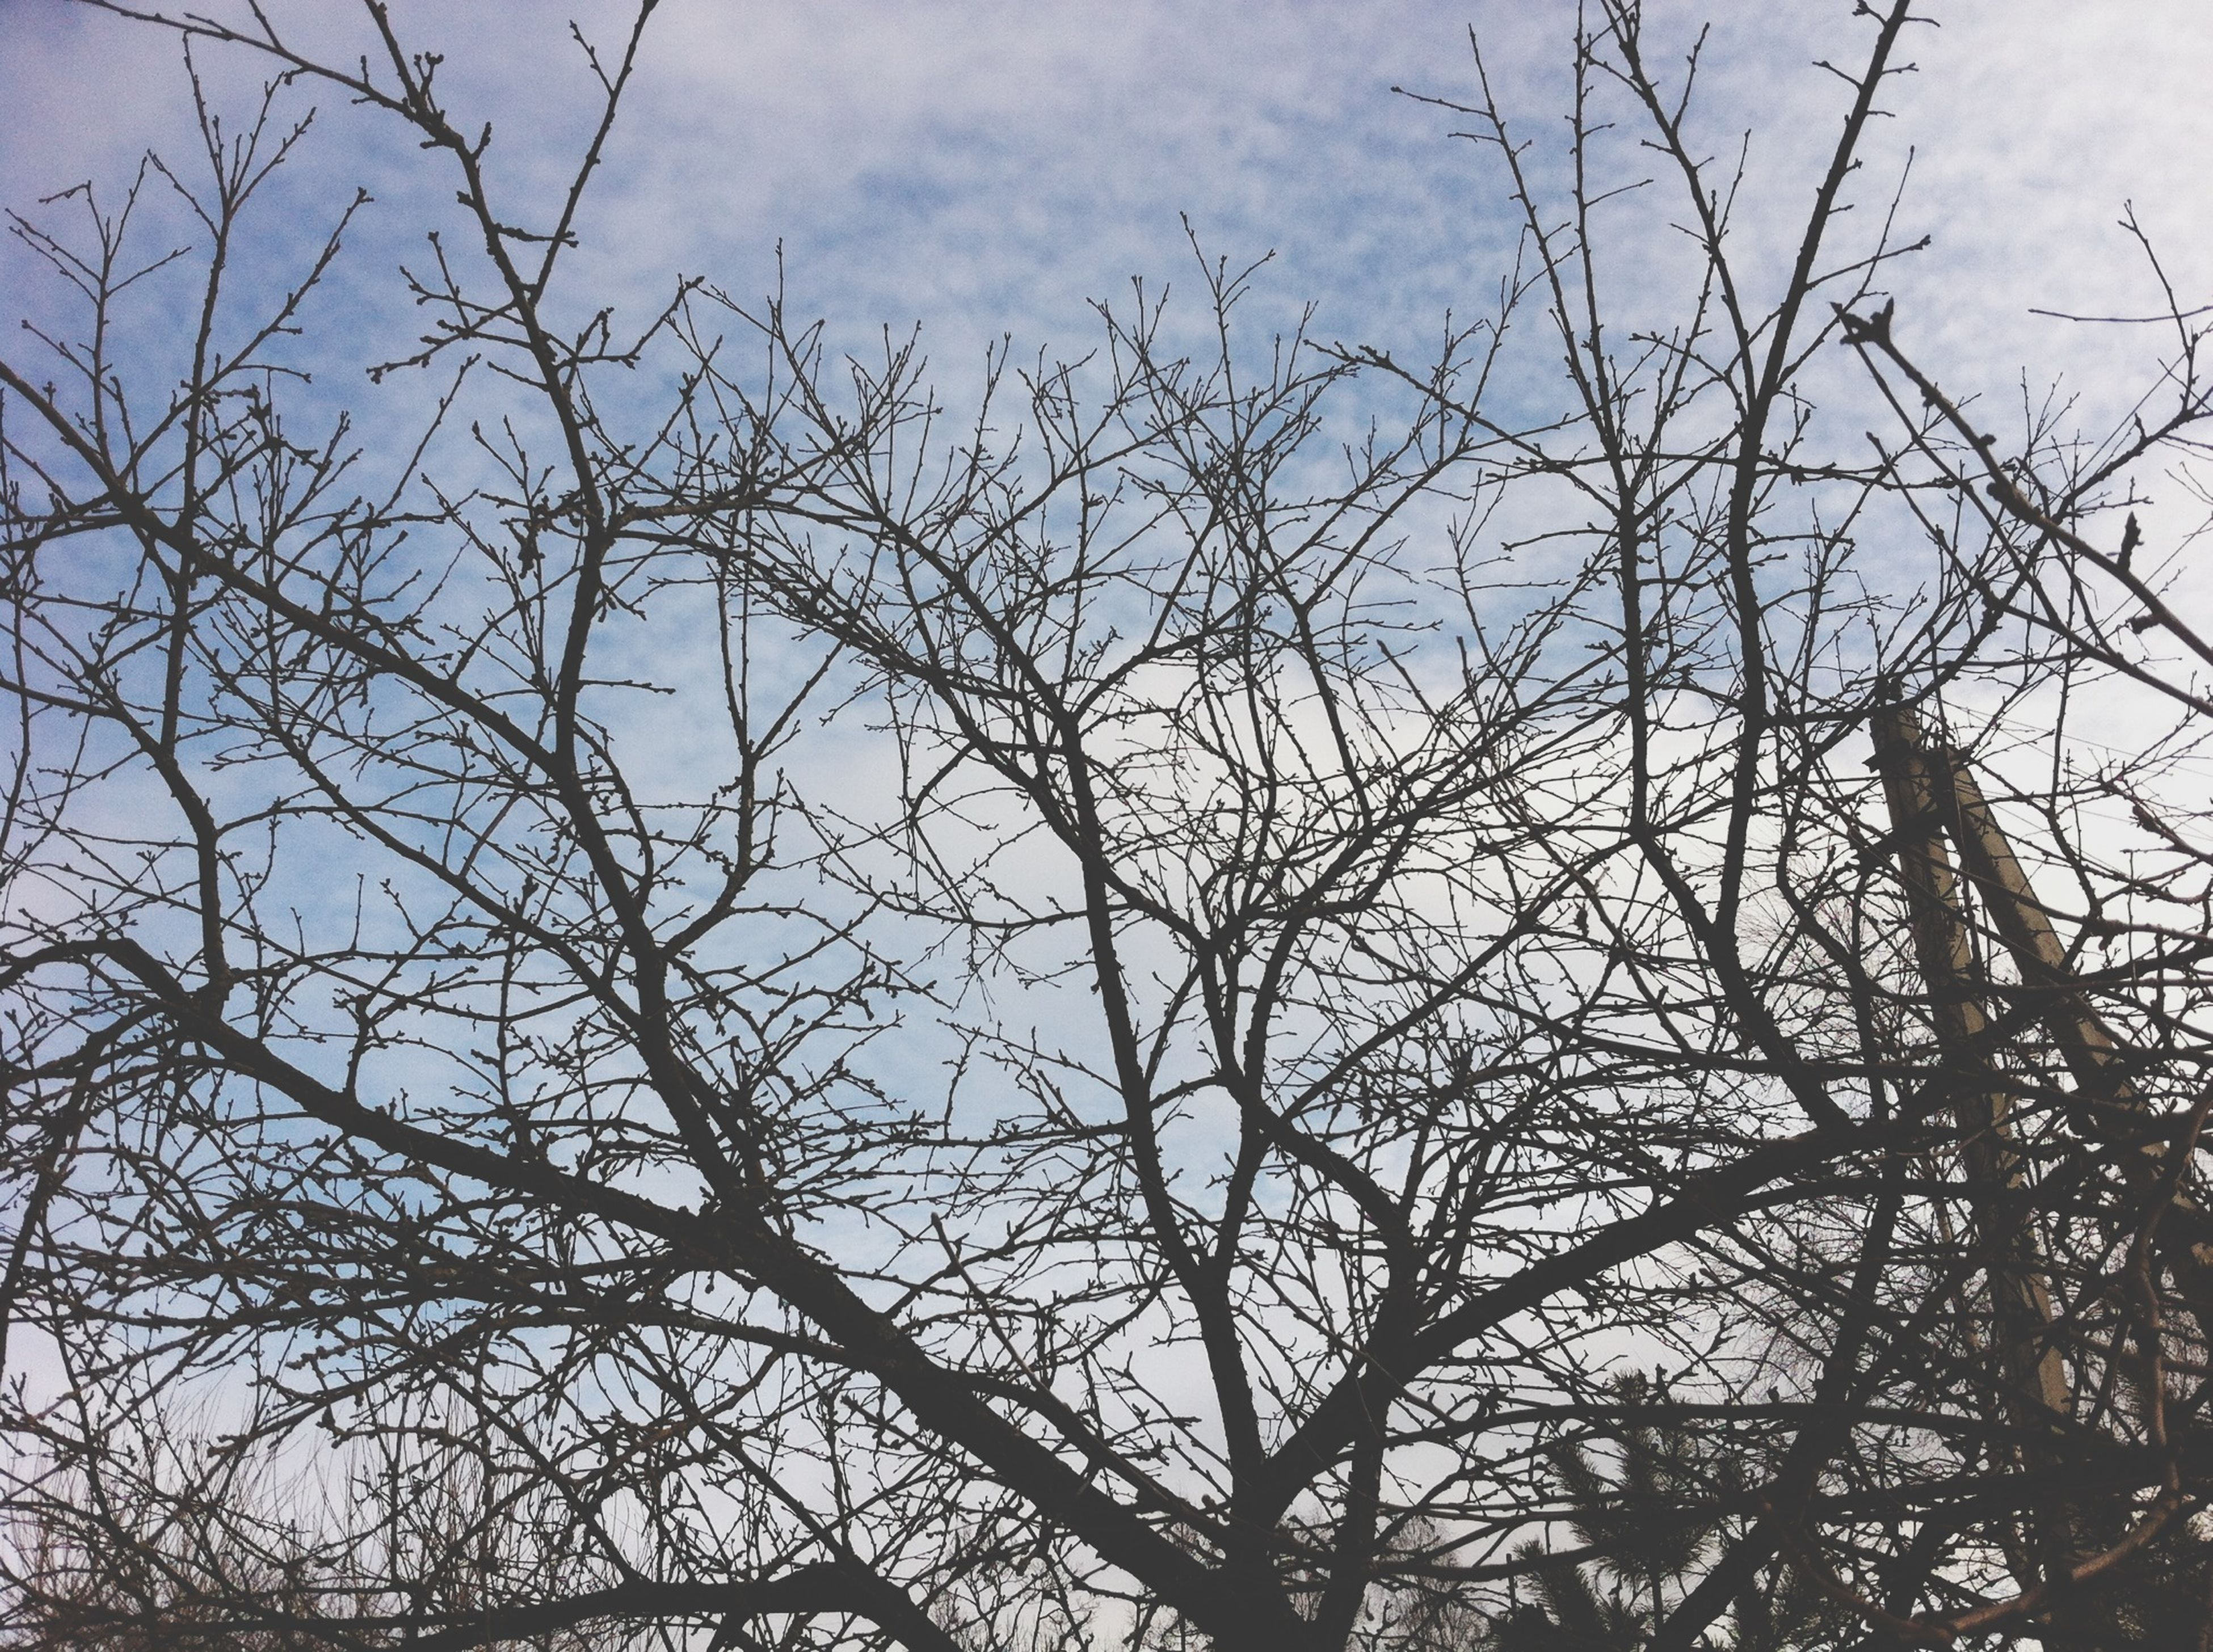 low angle view, branch, bare tree, tree, sky, nature, tranquility, cloud - sky, beauty in nature, growth, outdoors, scenics, day, silhouette, no people, cloudy, cloud, tranquil scene, high section, full frame